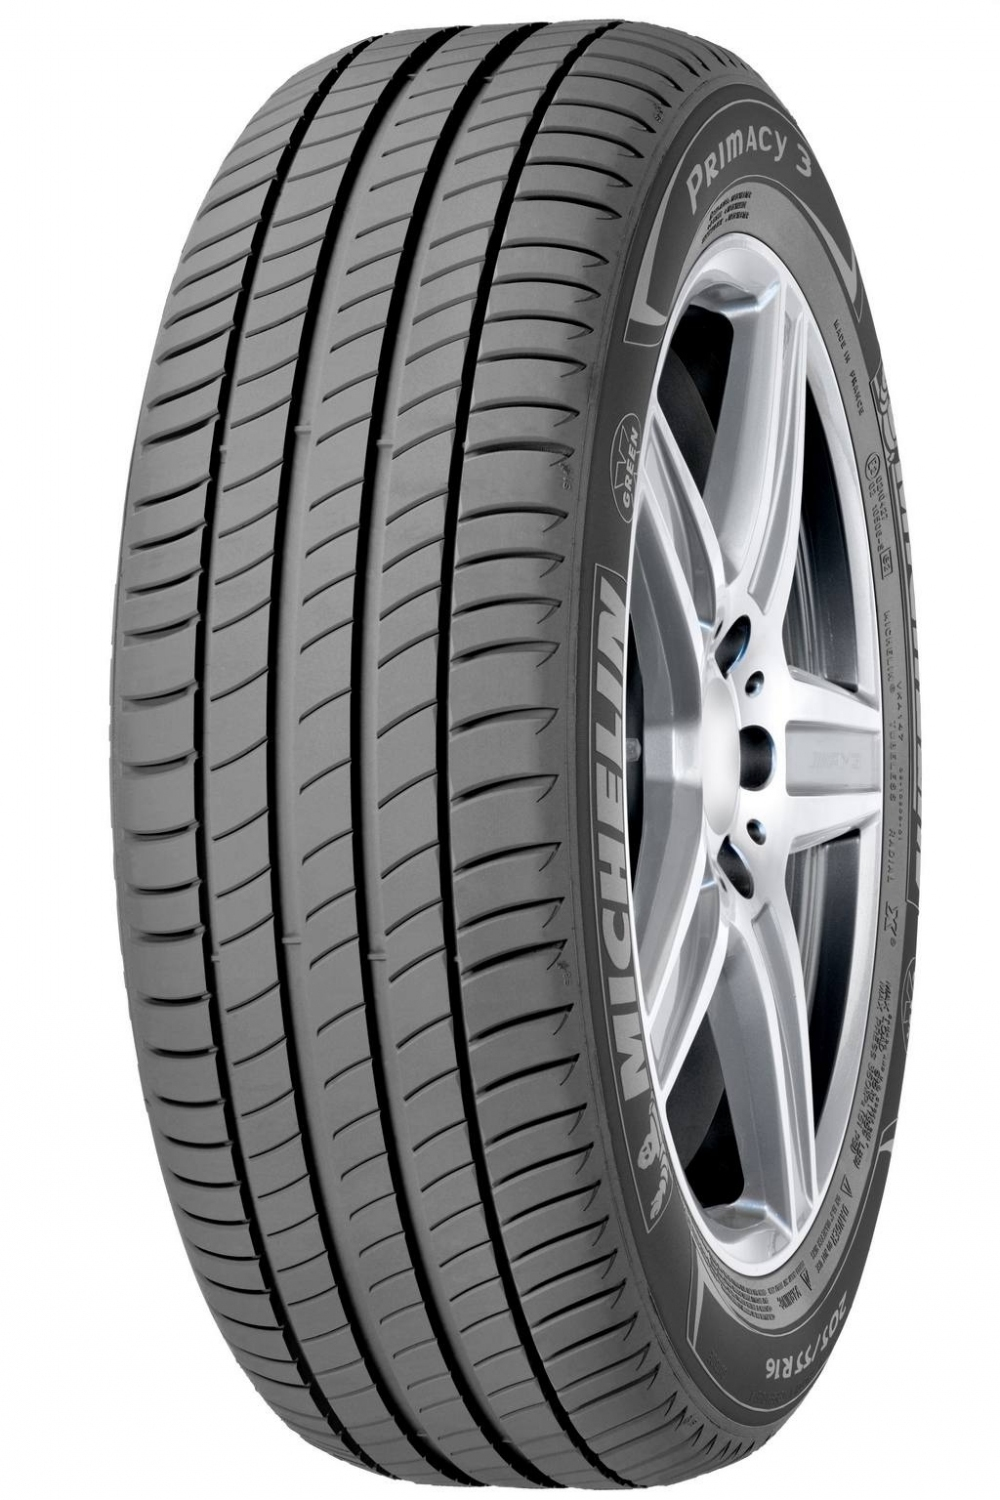 Michelin Primacy 3 205/55 R17 91W RunFlat